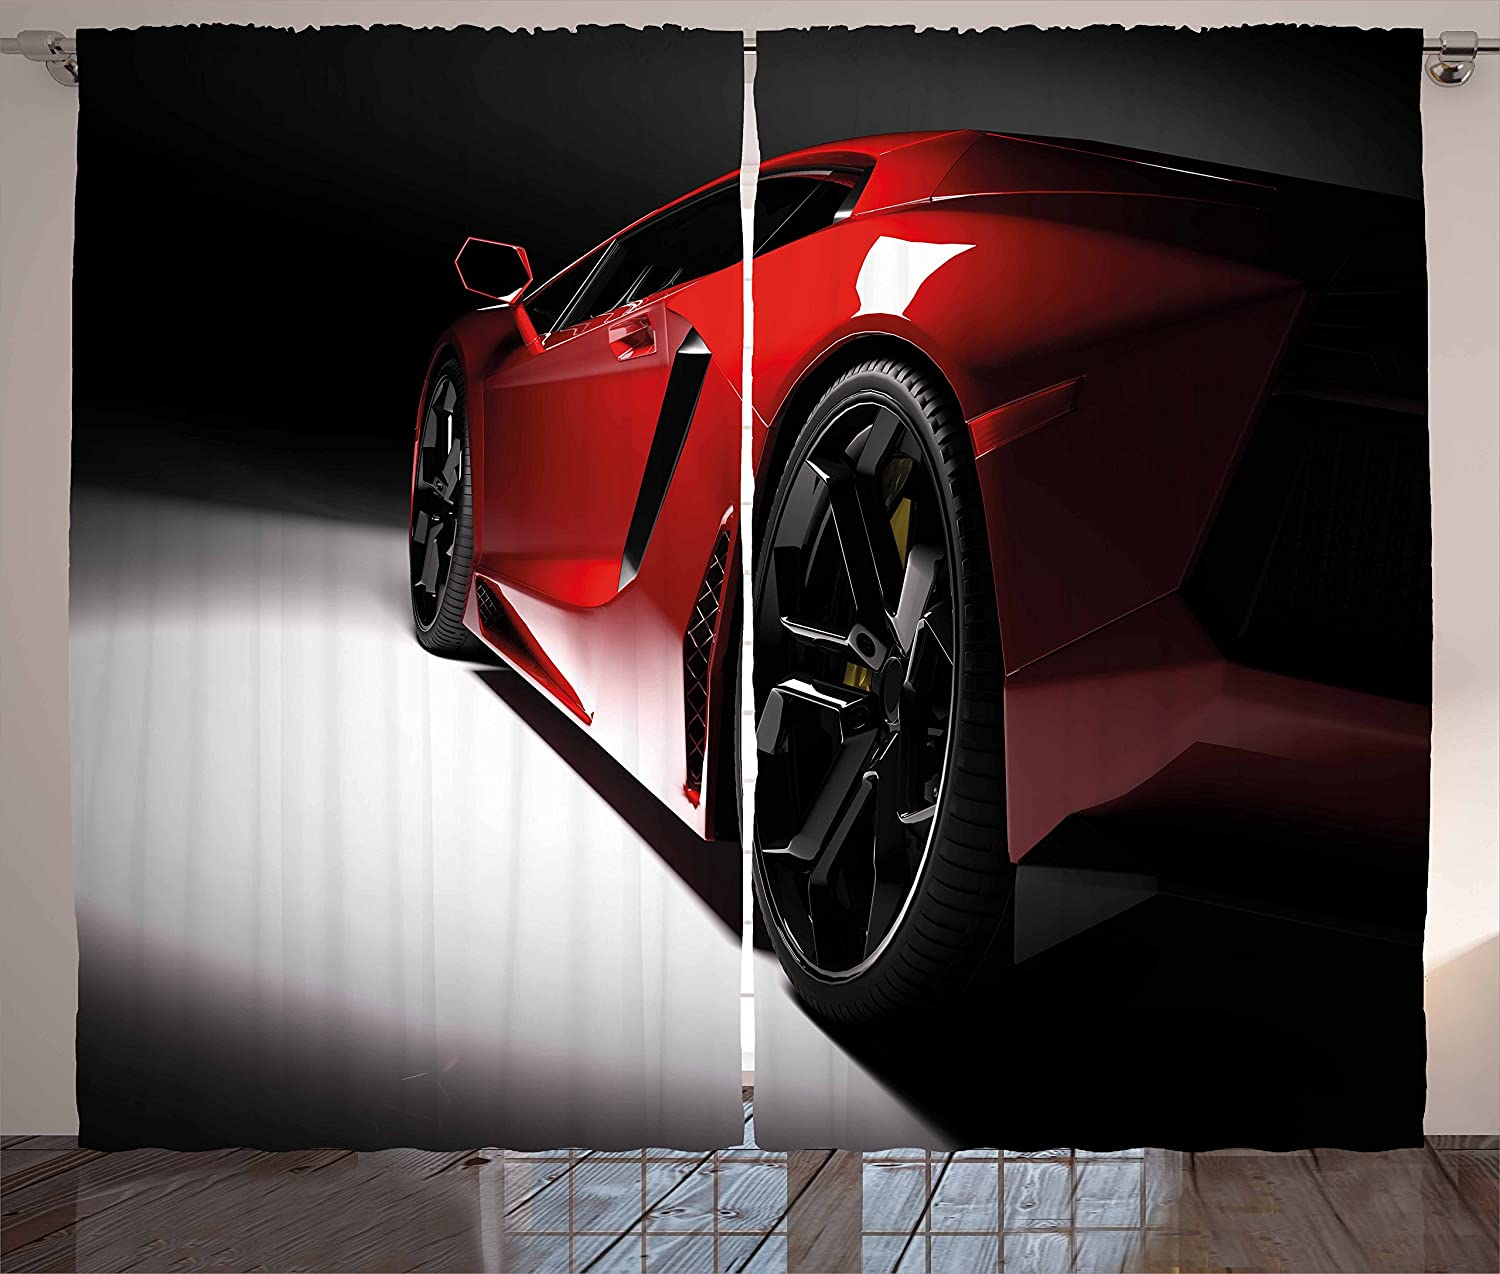 Lunarable Nursery Curtains, Modern Speed Sport Car Fancy Vivid Toned Exquisite Stylized Automobile Image, Living Room Bedroom Window Drapes 2 Panel Set, 108 W X 84 L Inches, Black and Red